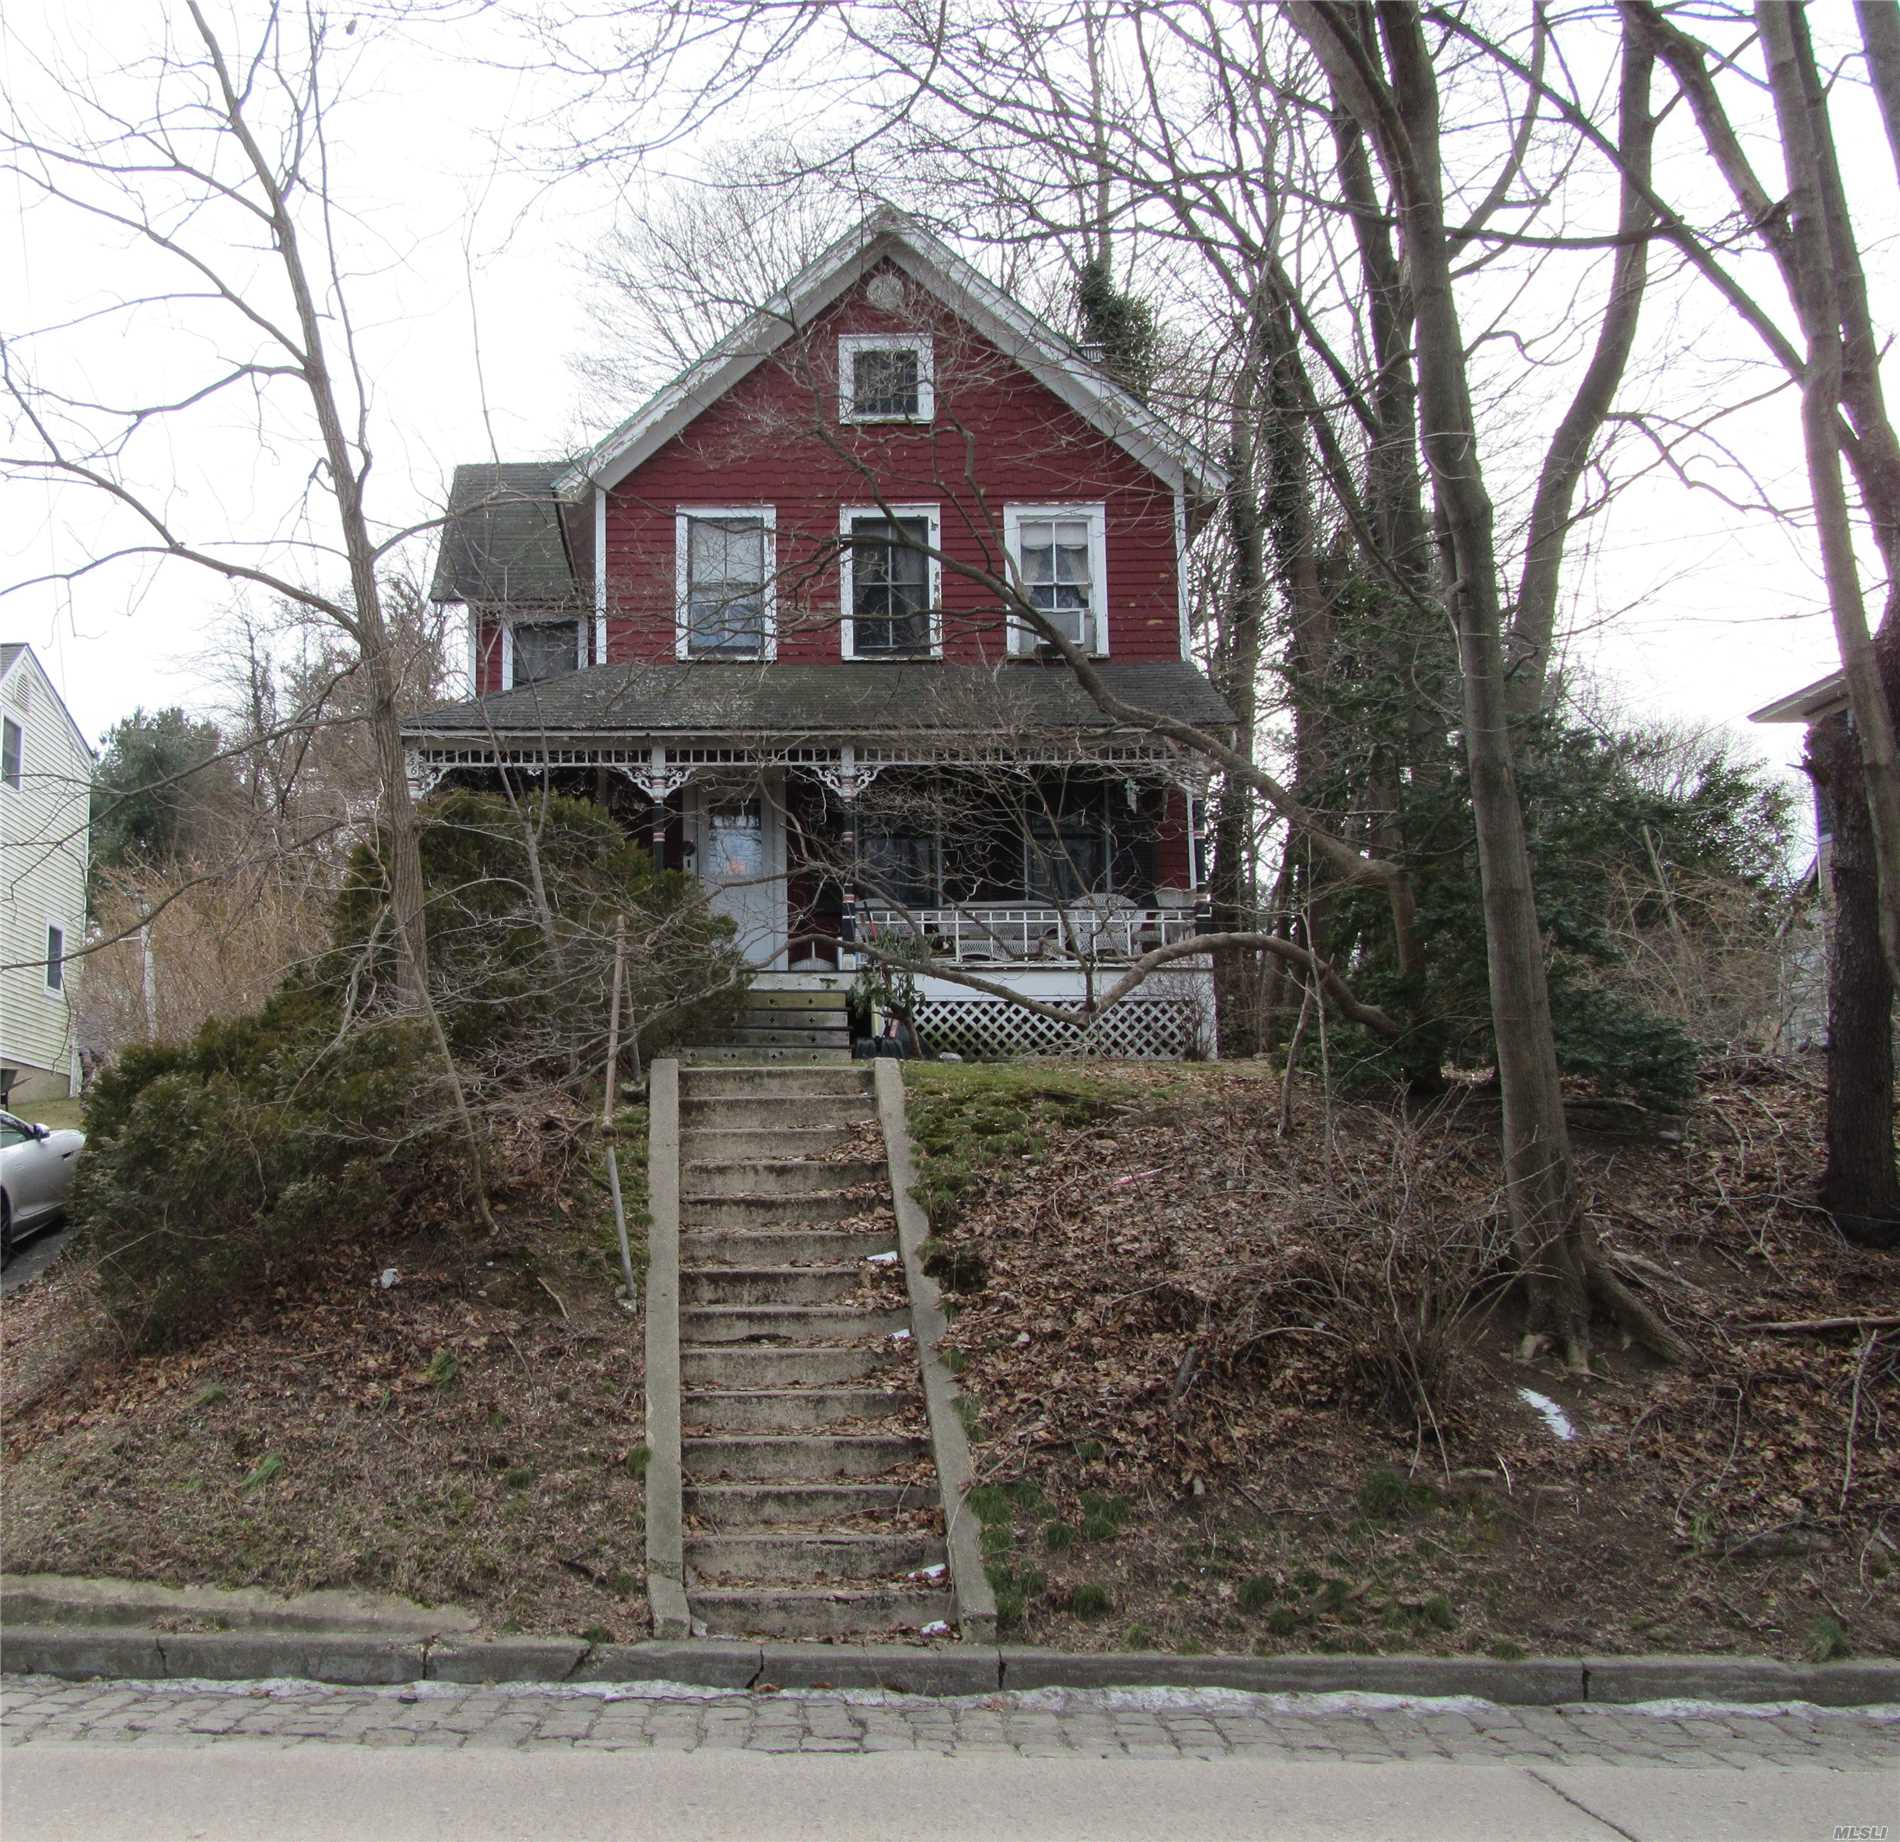 Restore Your Dream Home In Beautiful Northport Village, Nice Lot, Charming Old House, Needs To Be Renovated. Make This Your Own!! Sold As Is, Contents Of Home To Be Removed By Buyer.